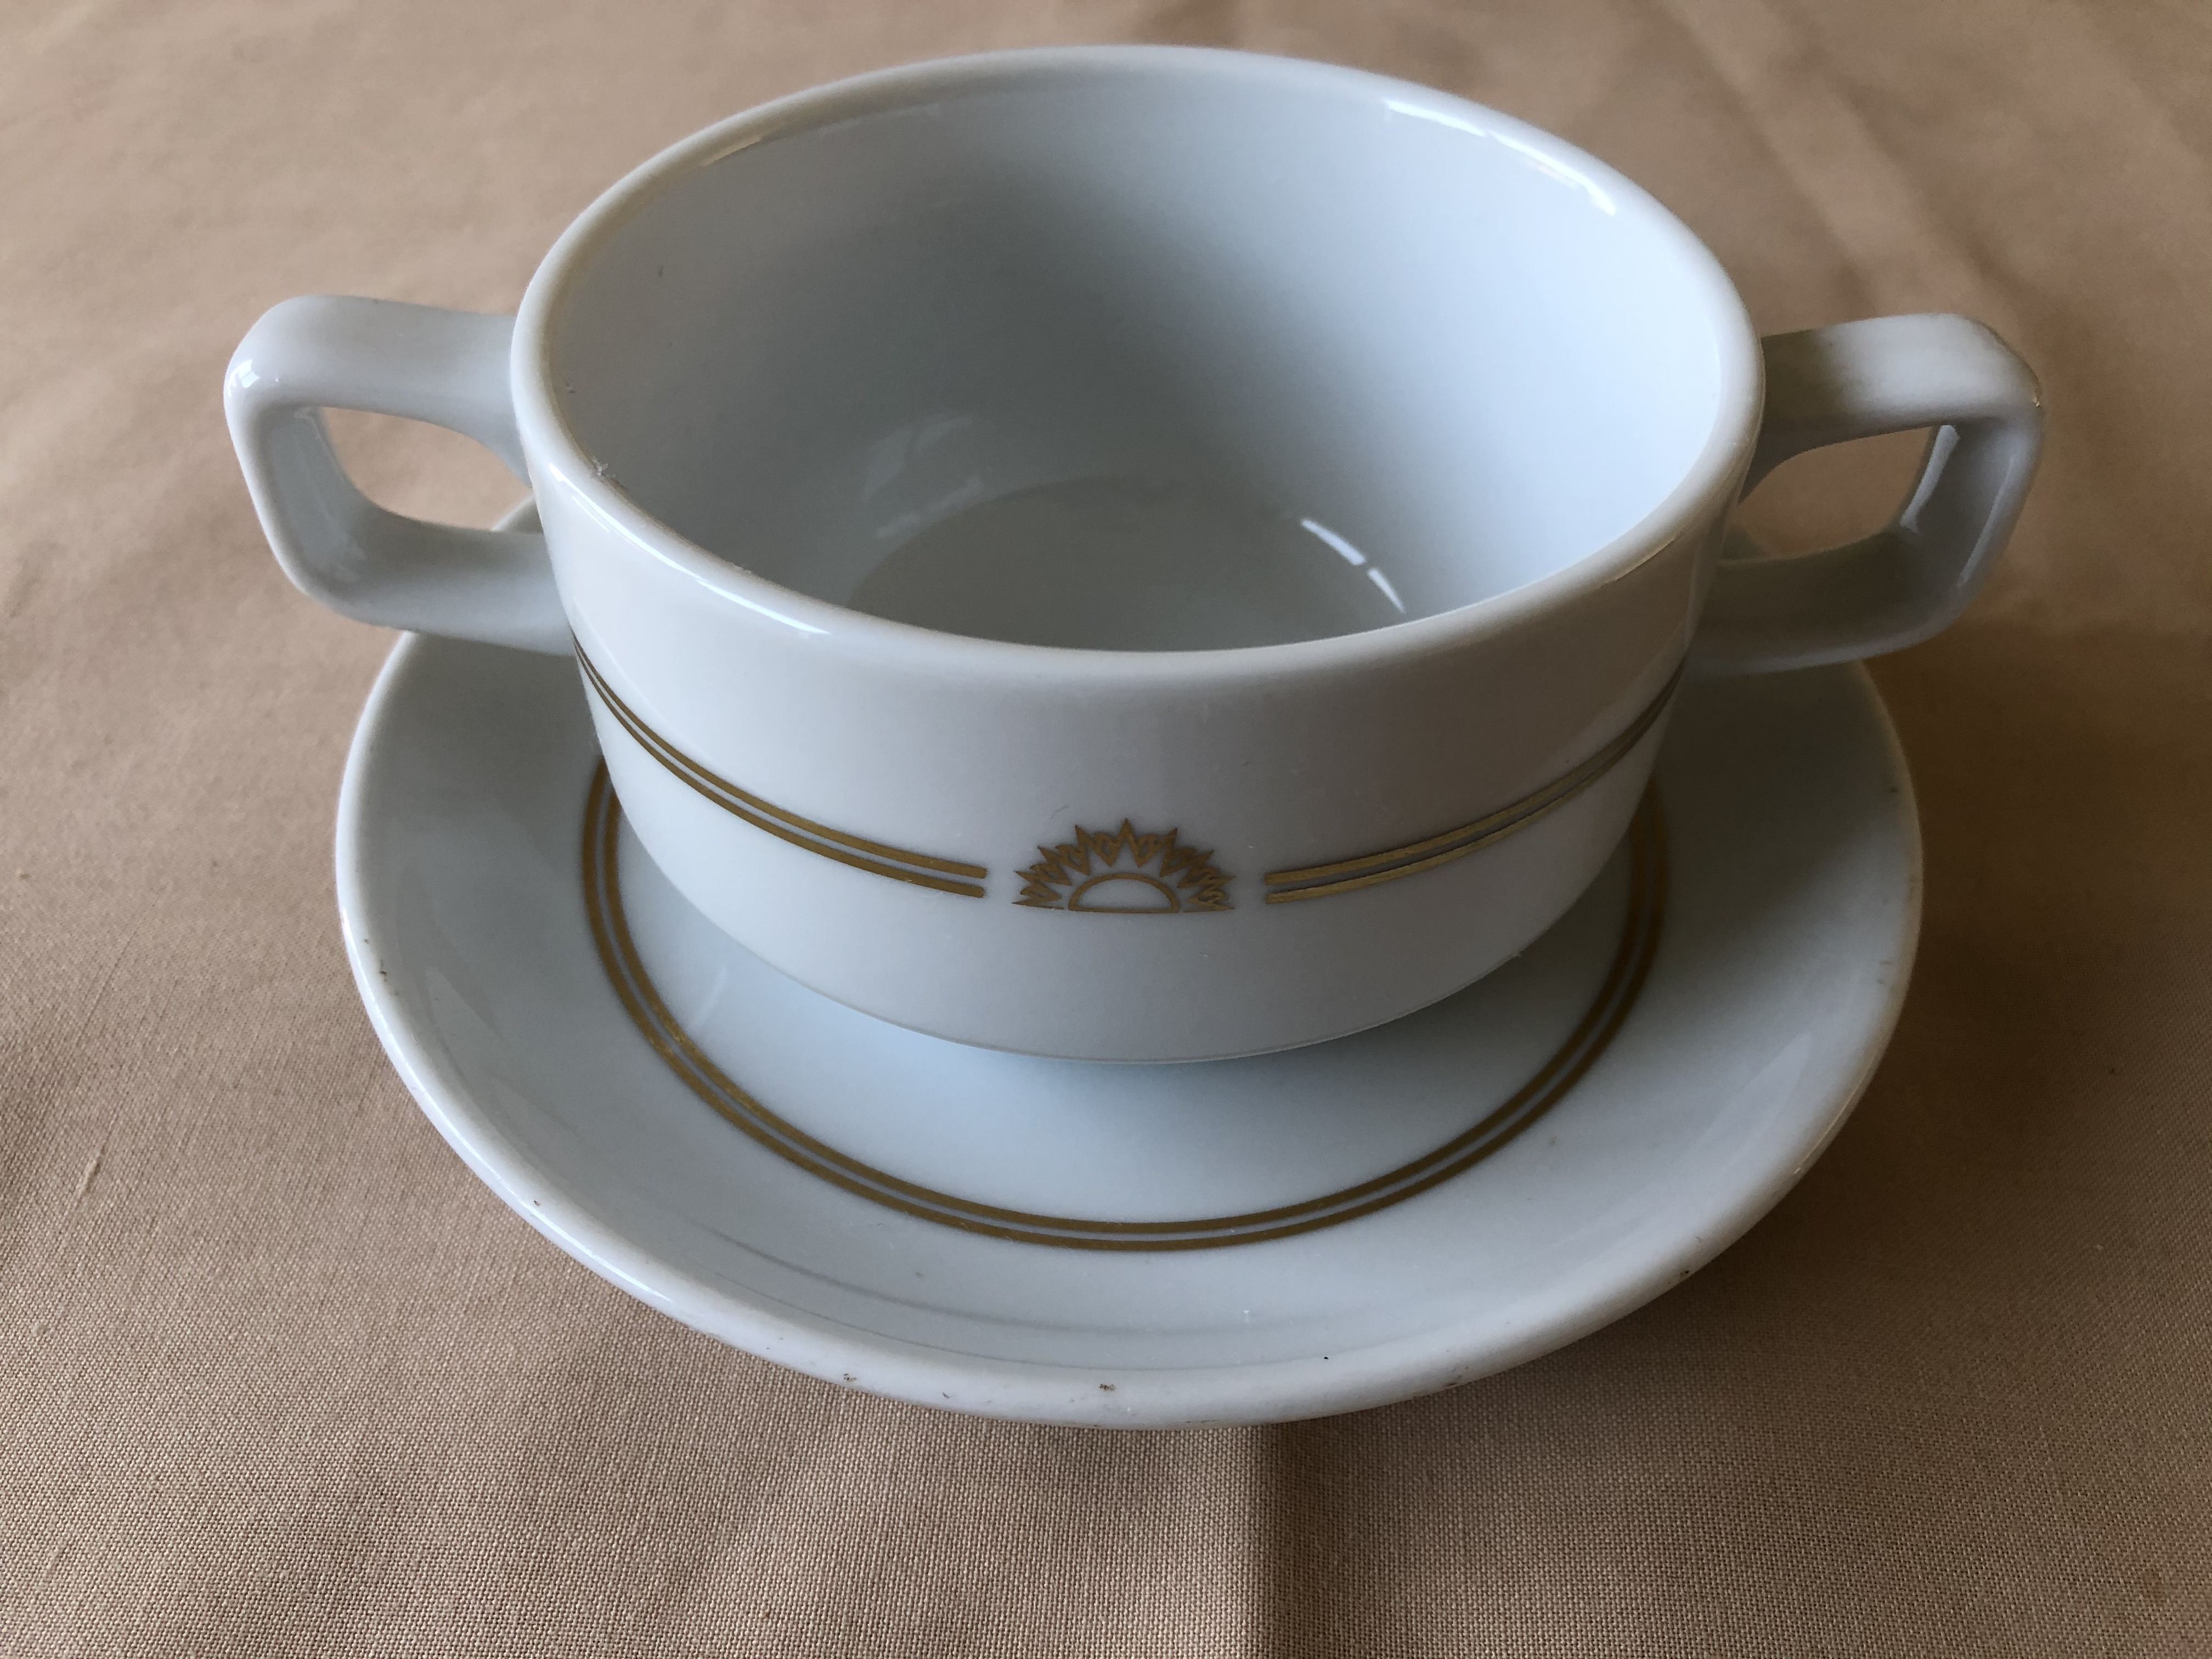 RARE TO FIND TWO HANDLED DINNER BOWL AND SAUCER FROM THE P&O VESSEL THE CANBERRA